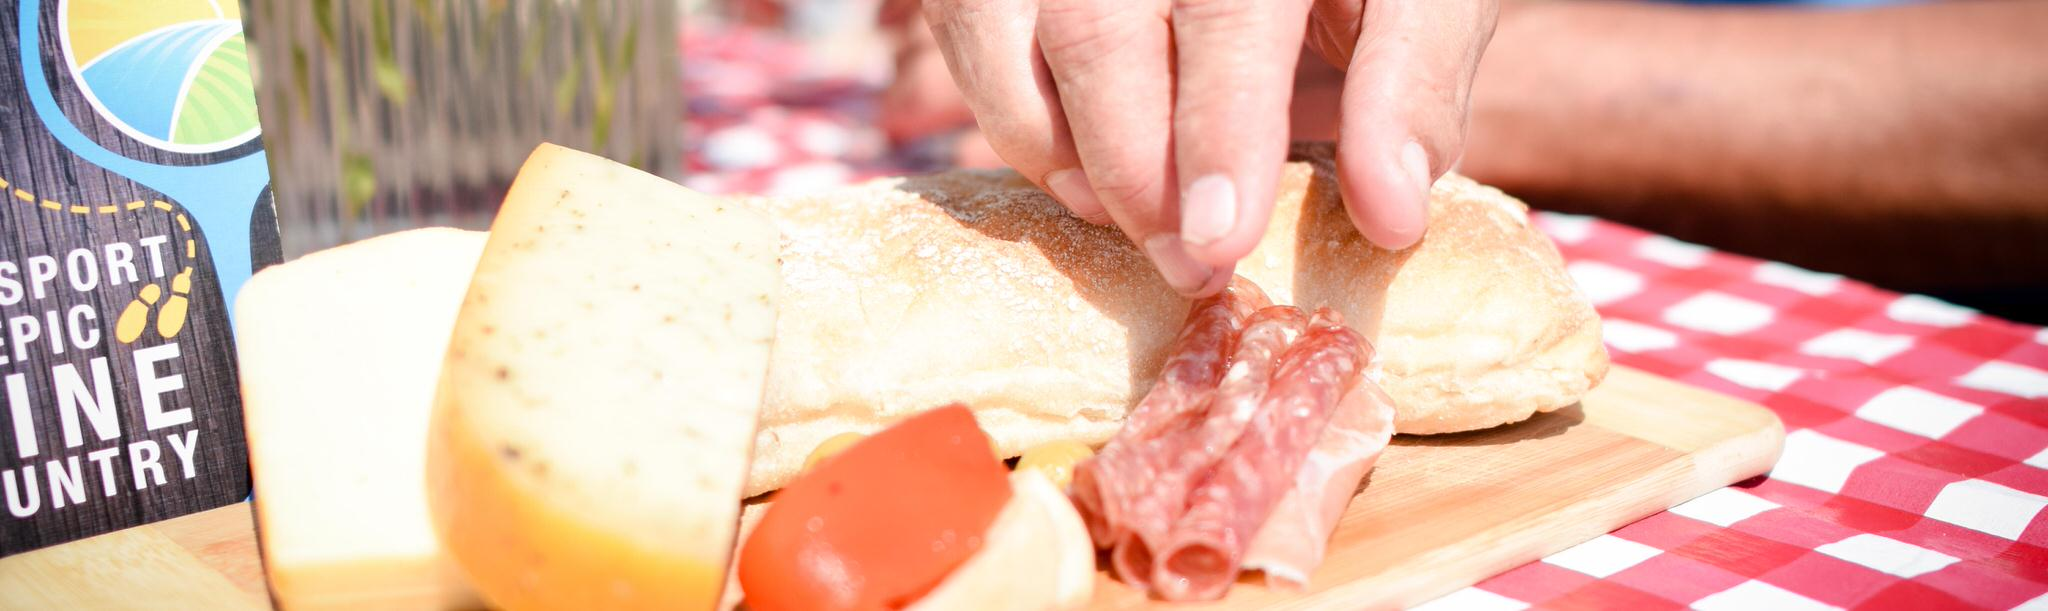 A person grabbing food from charcuterie plate